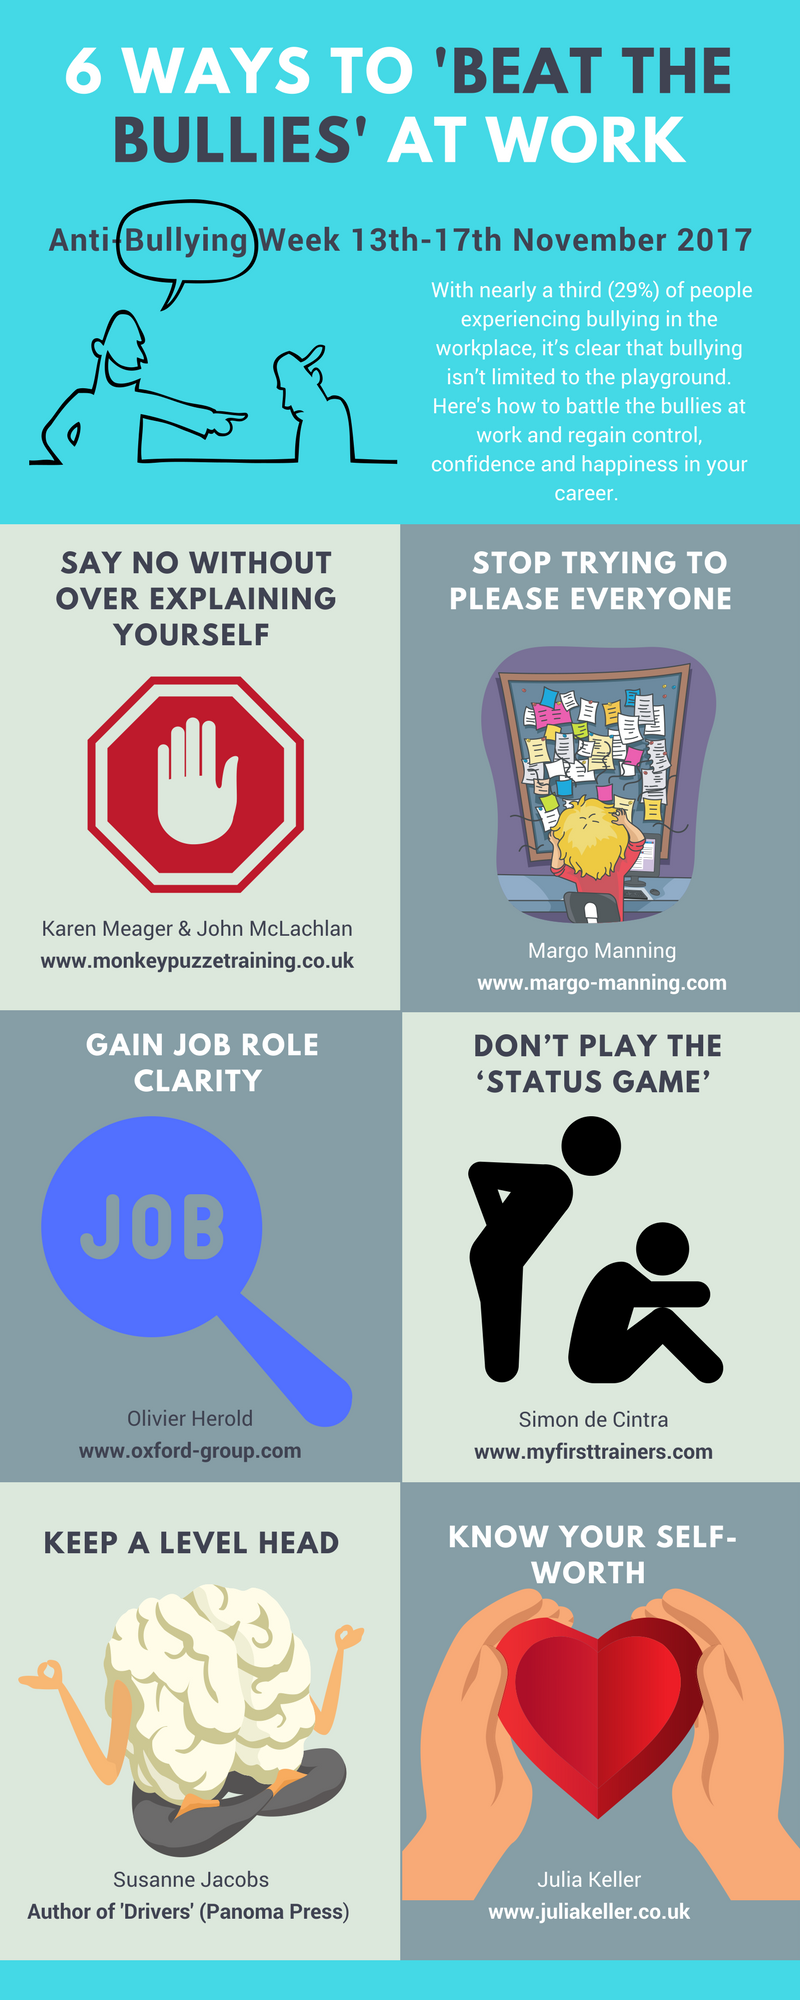 6 Ways to 'beat the bullies' at work (2)